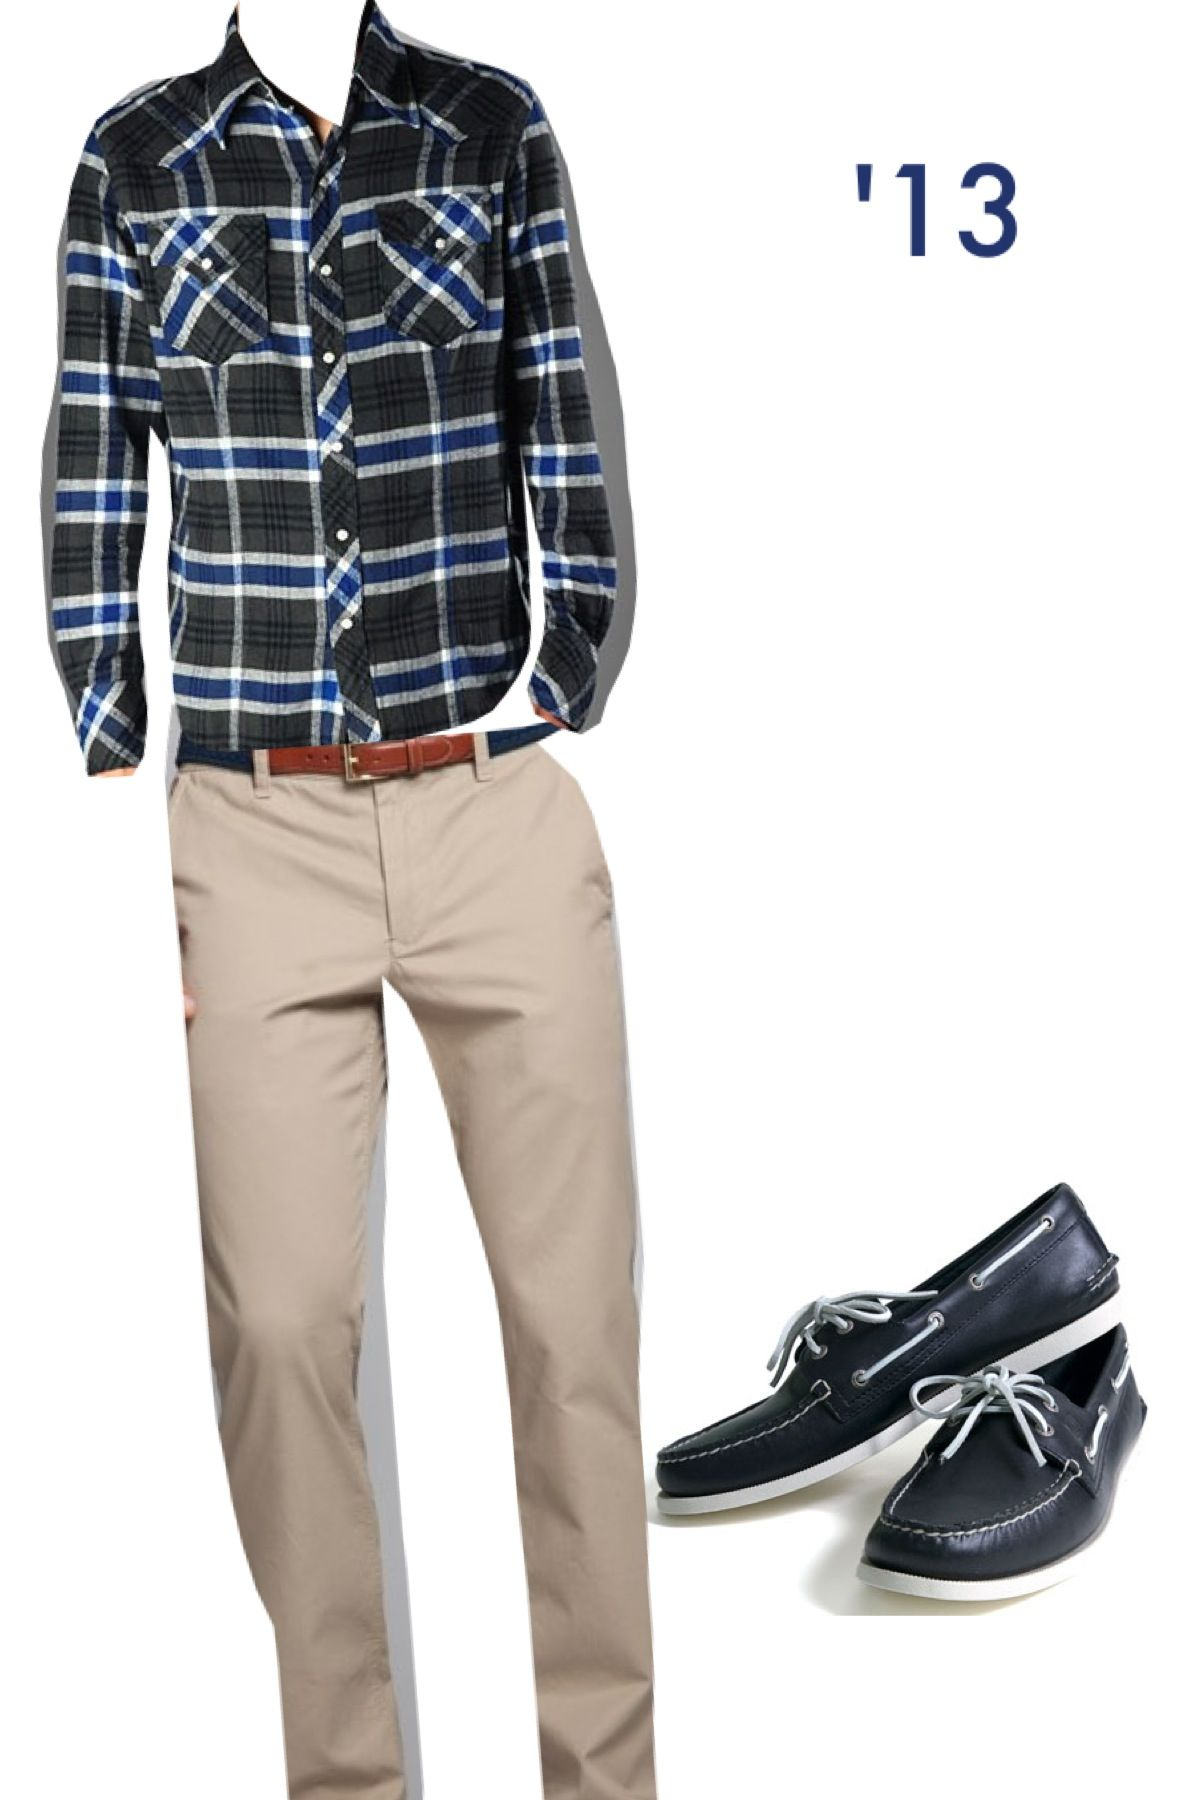 Flannel shirt, khakis and boat shoes- stylish! #combo #fashionable #neat #classy